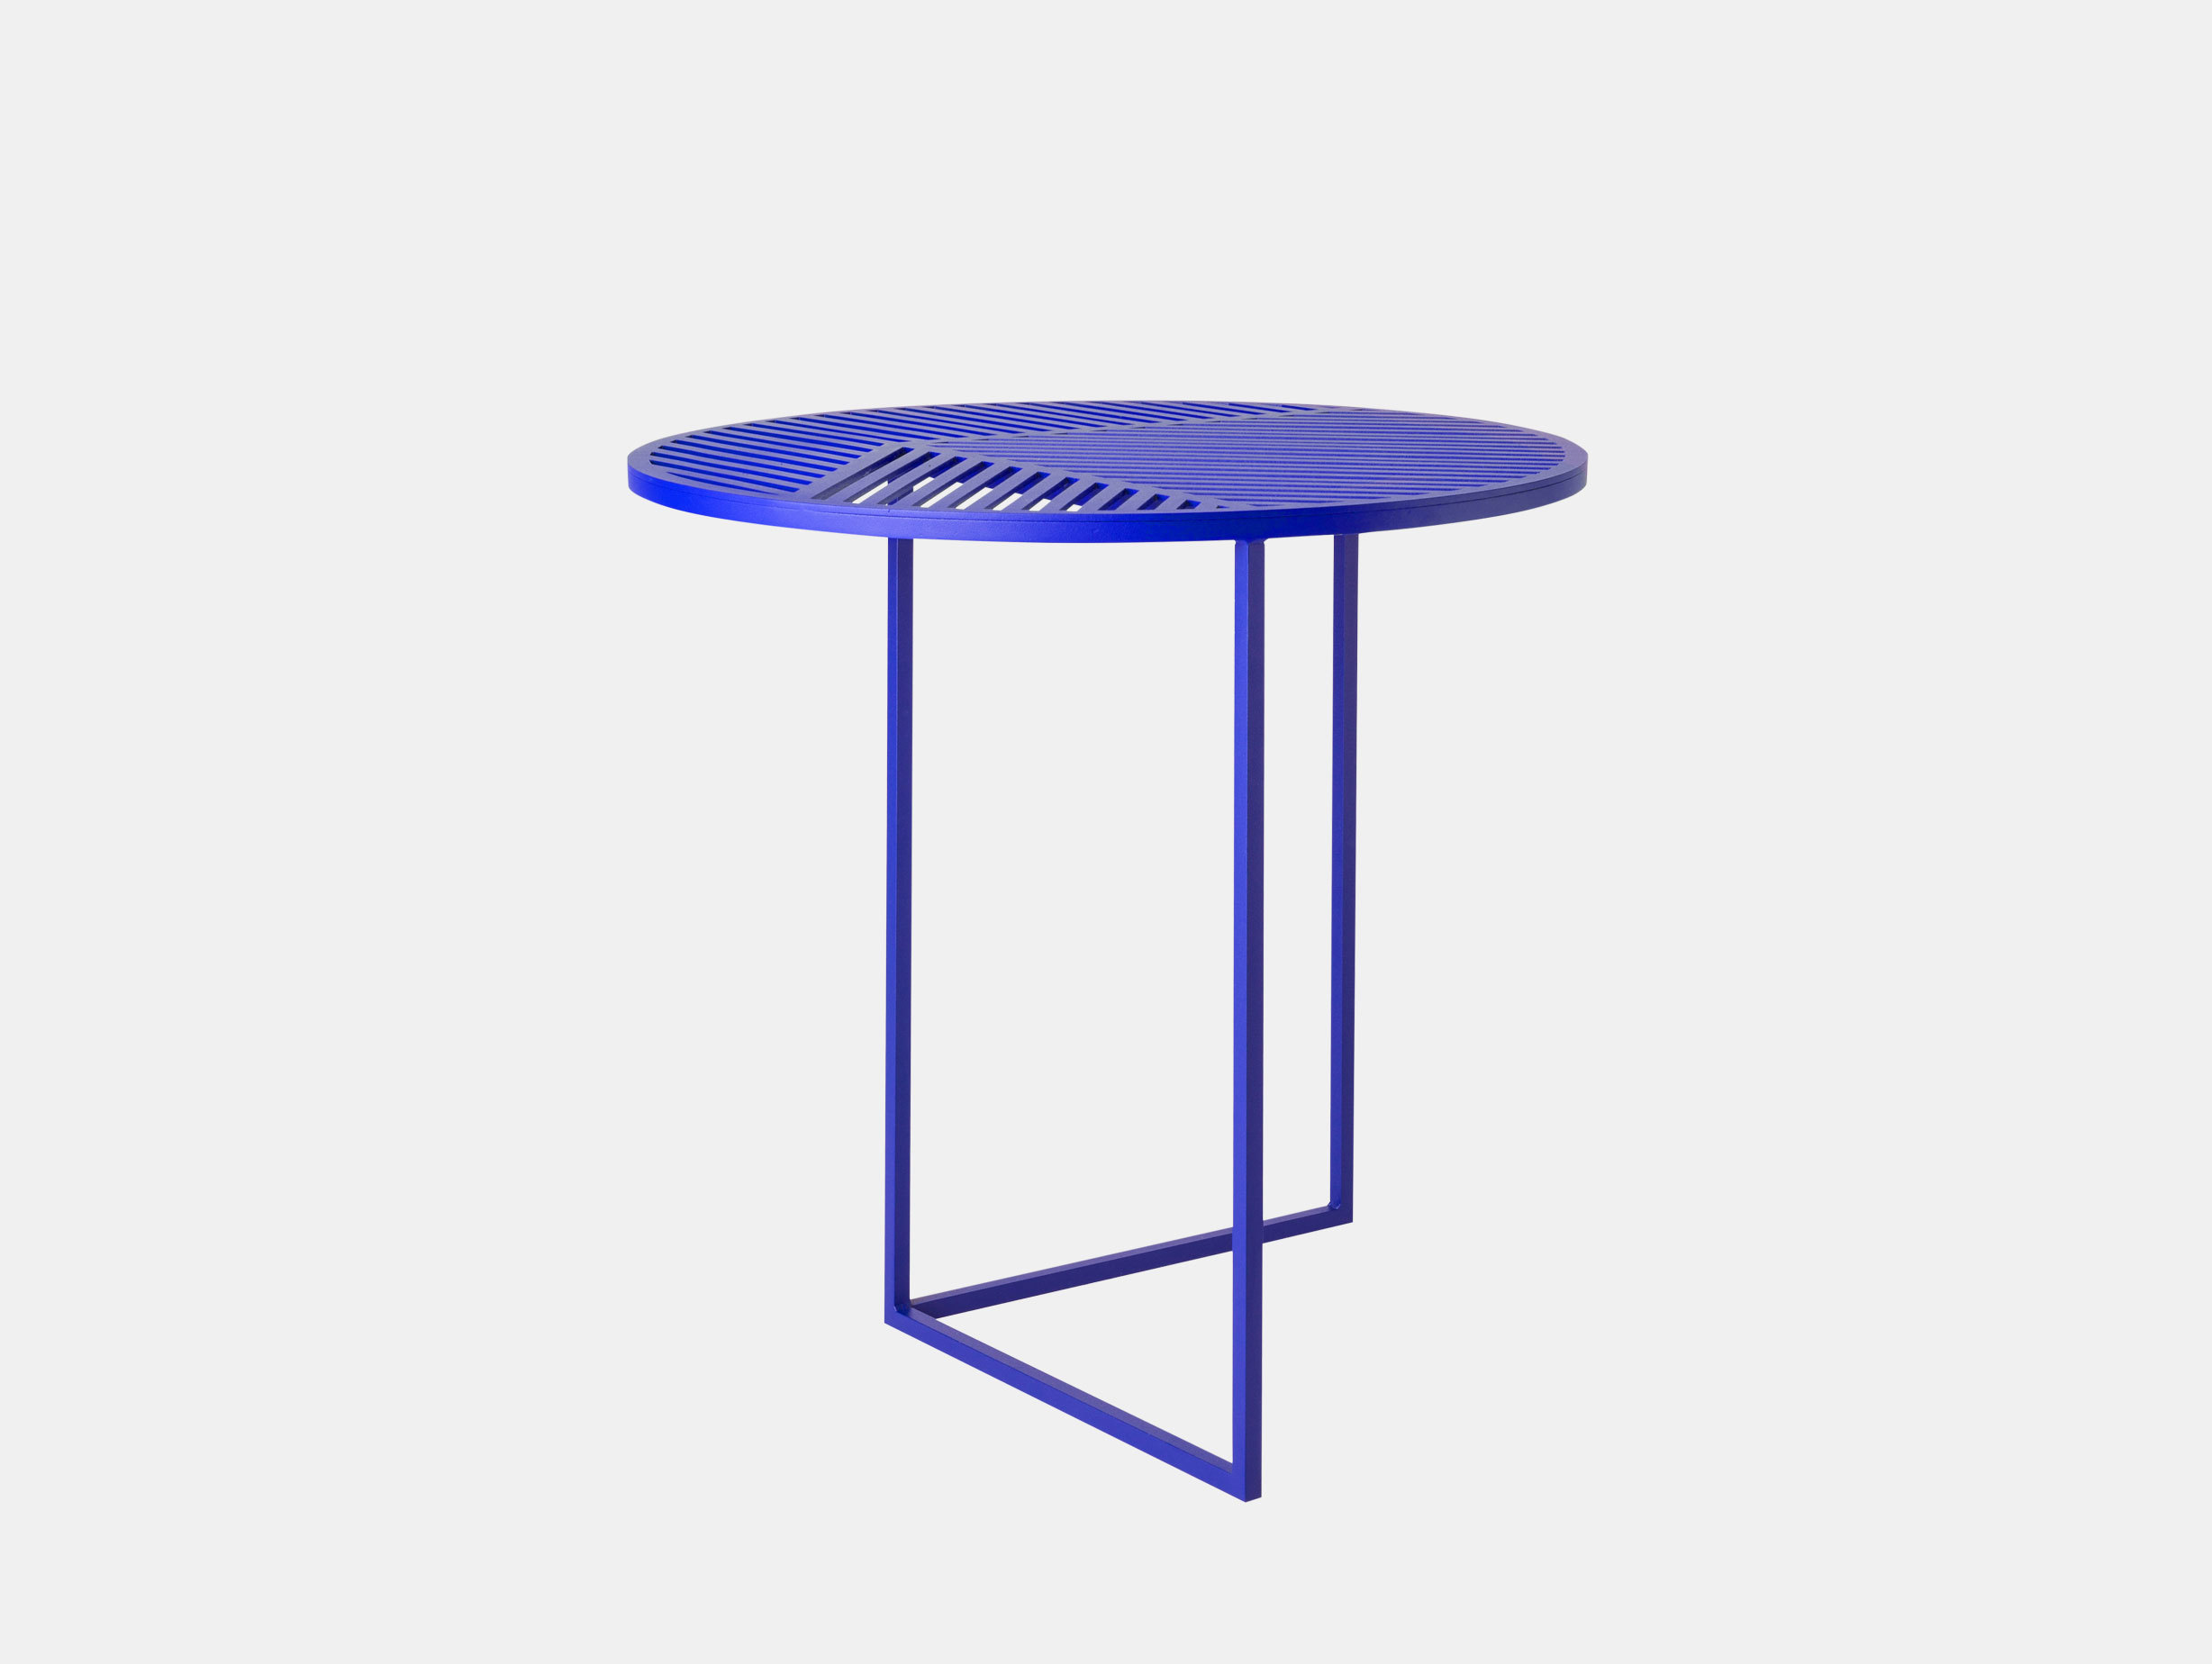 Petite Friture Iso Side Table Round Blue Pool